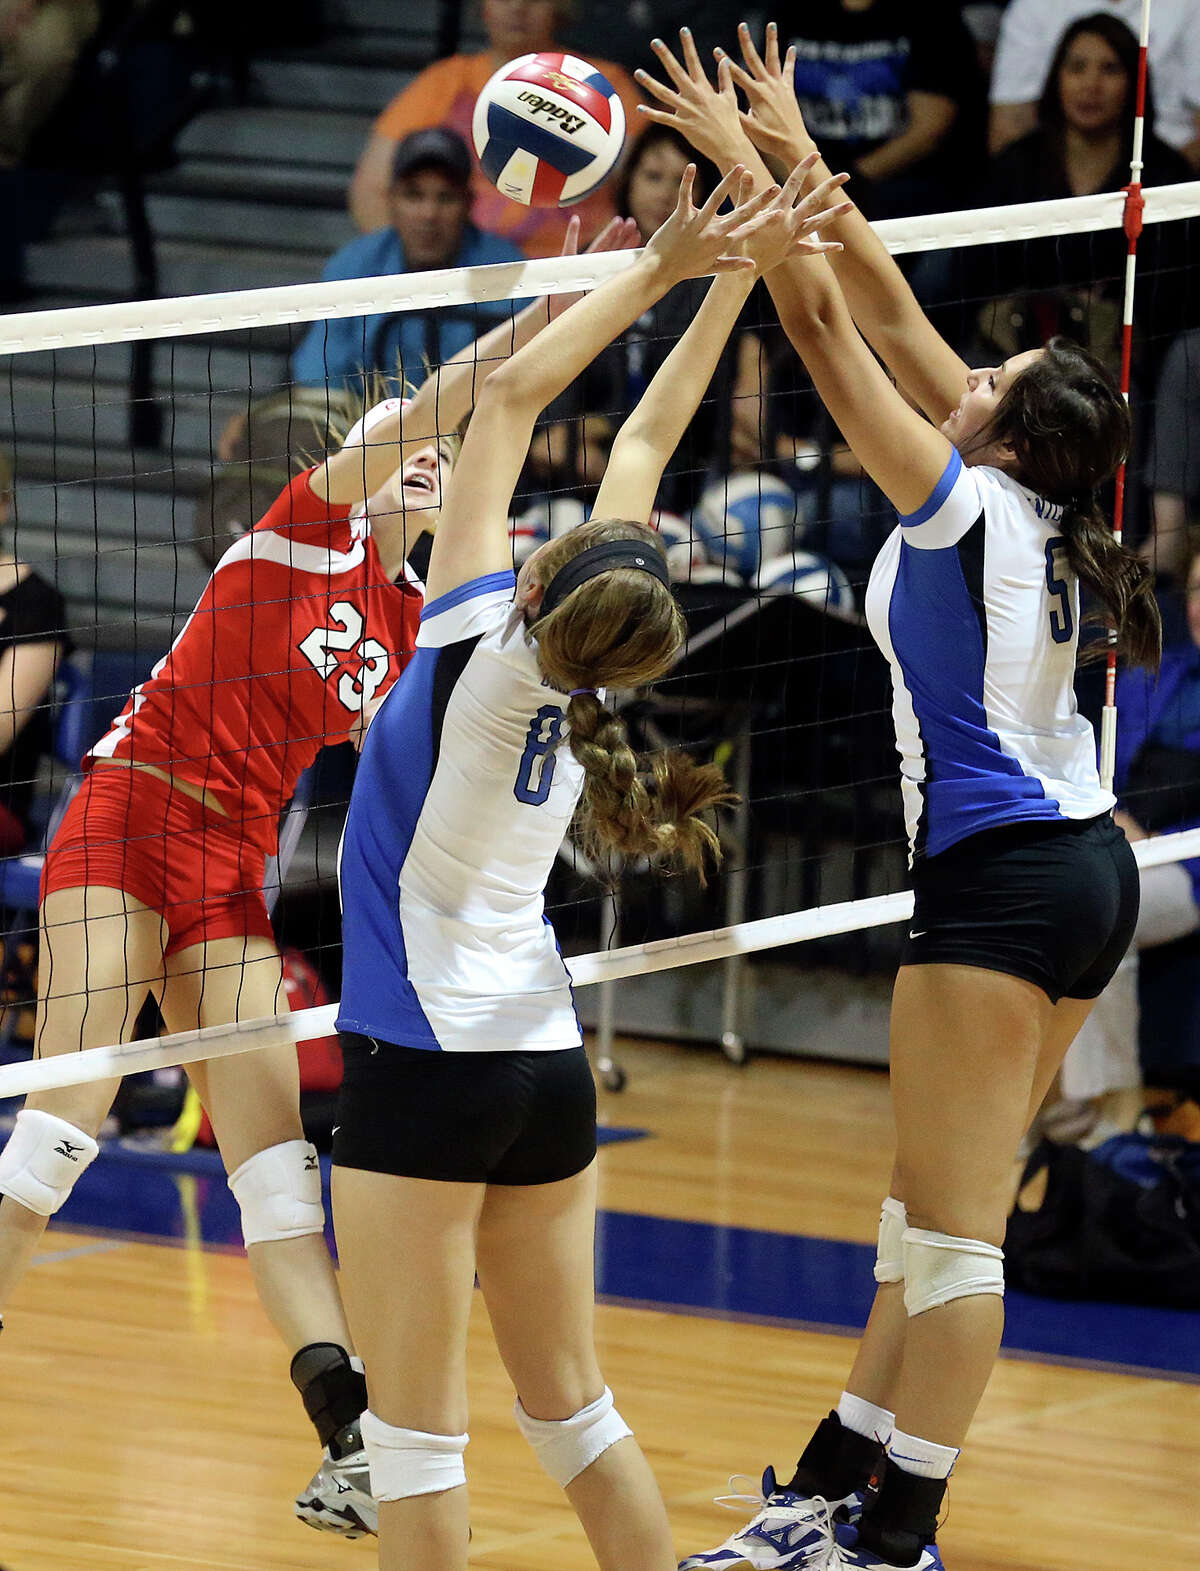 Canyon's KK Payne hits the ball into Alexis Uleman (8) and Avery Rios as New Braunfels hosts Canyon in volleyball at New Braunfels High School gym on October 15, 2013.